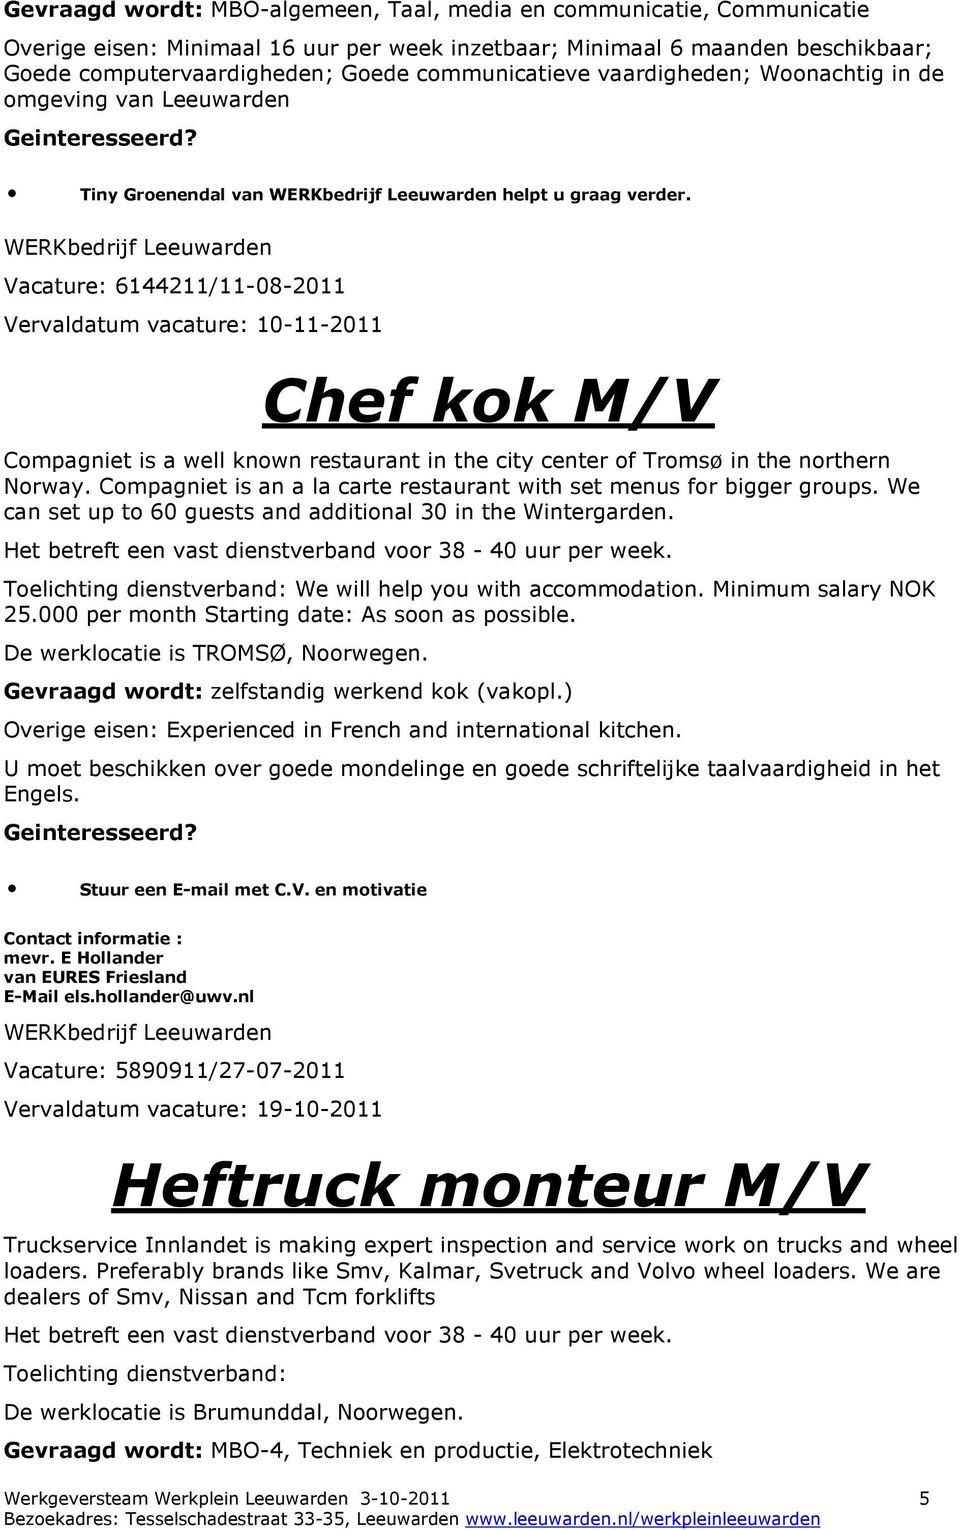 Vacature: 6144211/11-08-2011 Vervaldatum vacature: 10-11-2011 Chef kok M/V Compagniet is a well known restaurant in the city center of Tromsø in the northern Norway.